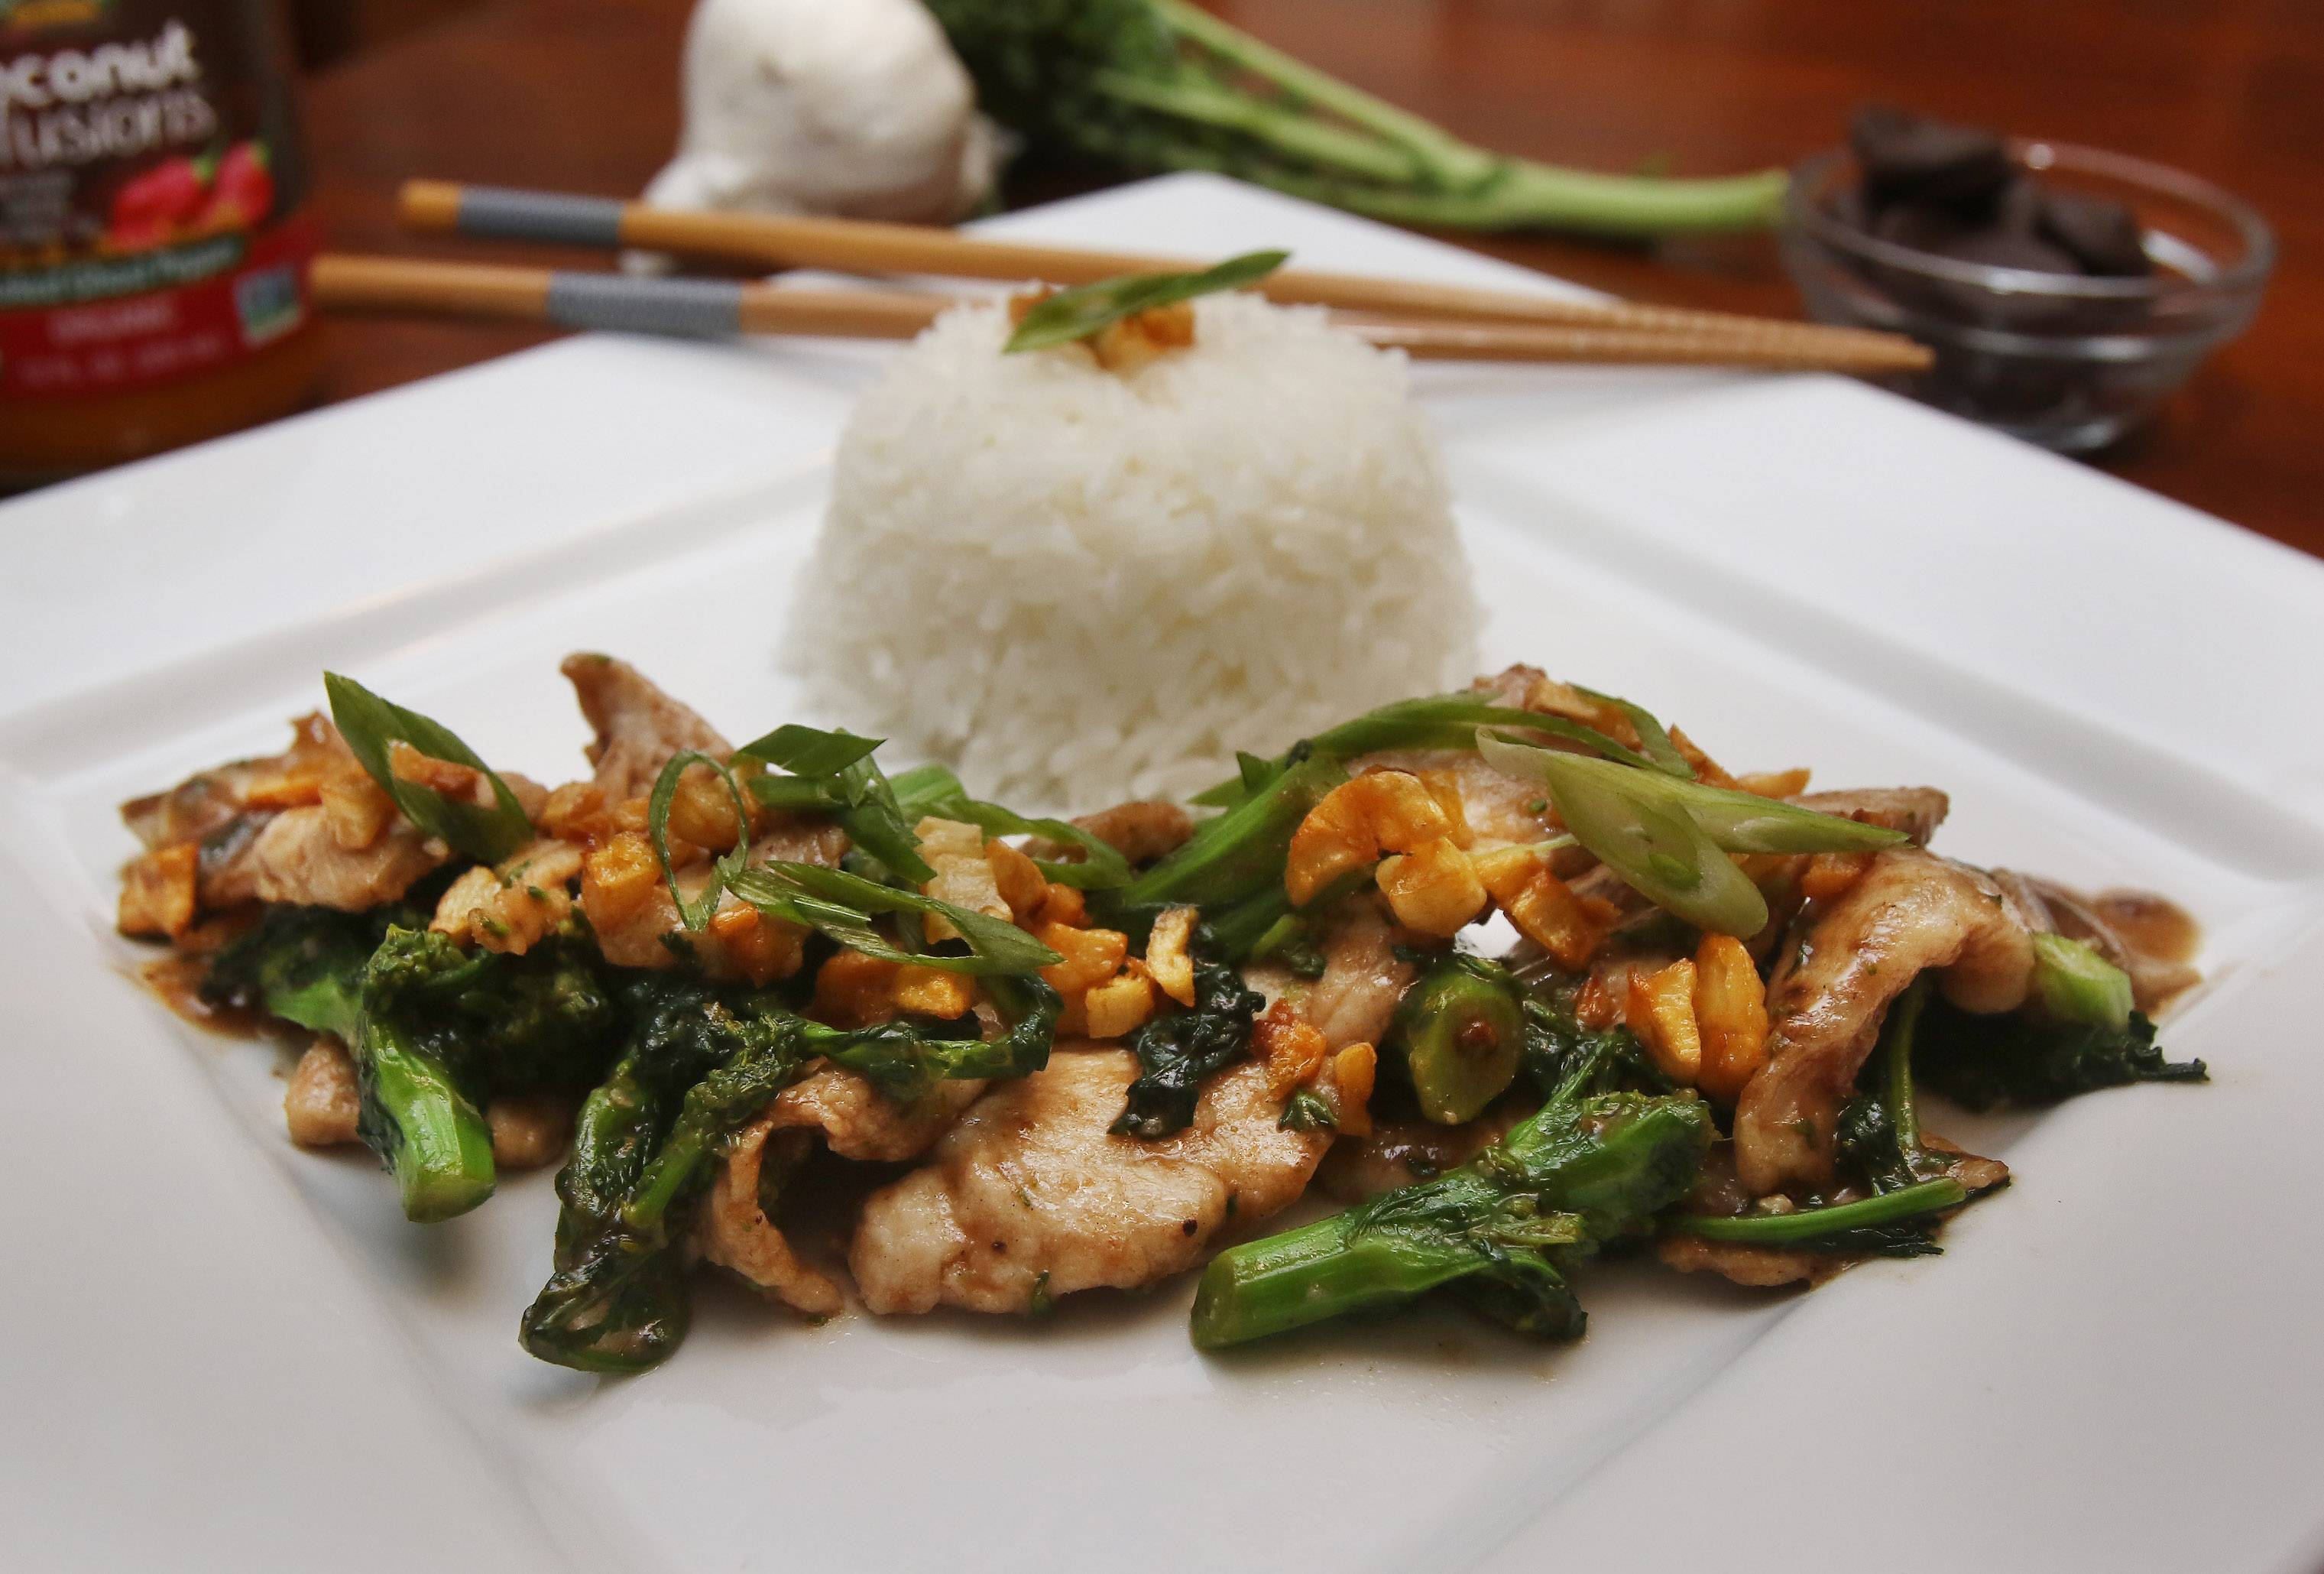 Joe Wachter's Stir-Fried Pork and Broccoli Raab in Brown Sauce with Fried Garlic